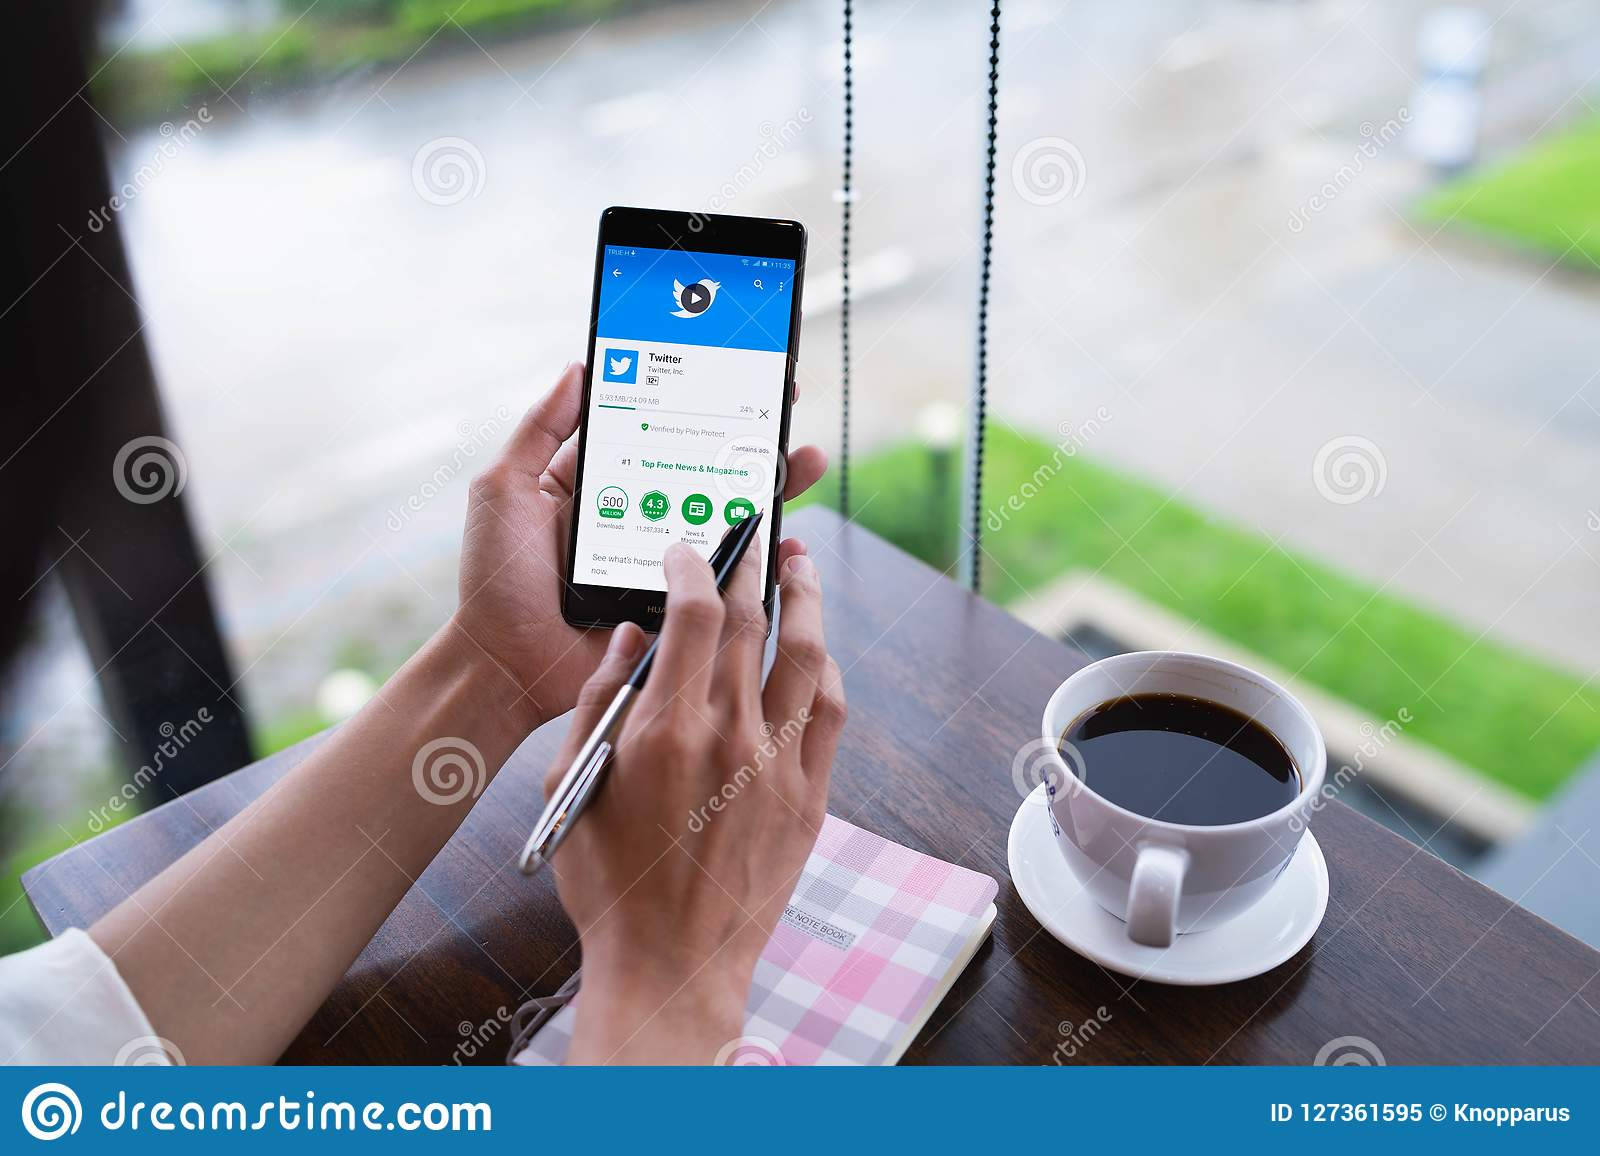 CHIANG MAI, THAILAND - August 18,2018: Woman hand holding HUAWEI with Twitter app on the screen.Twitter is an online news and soc